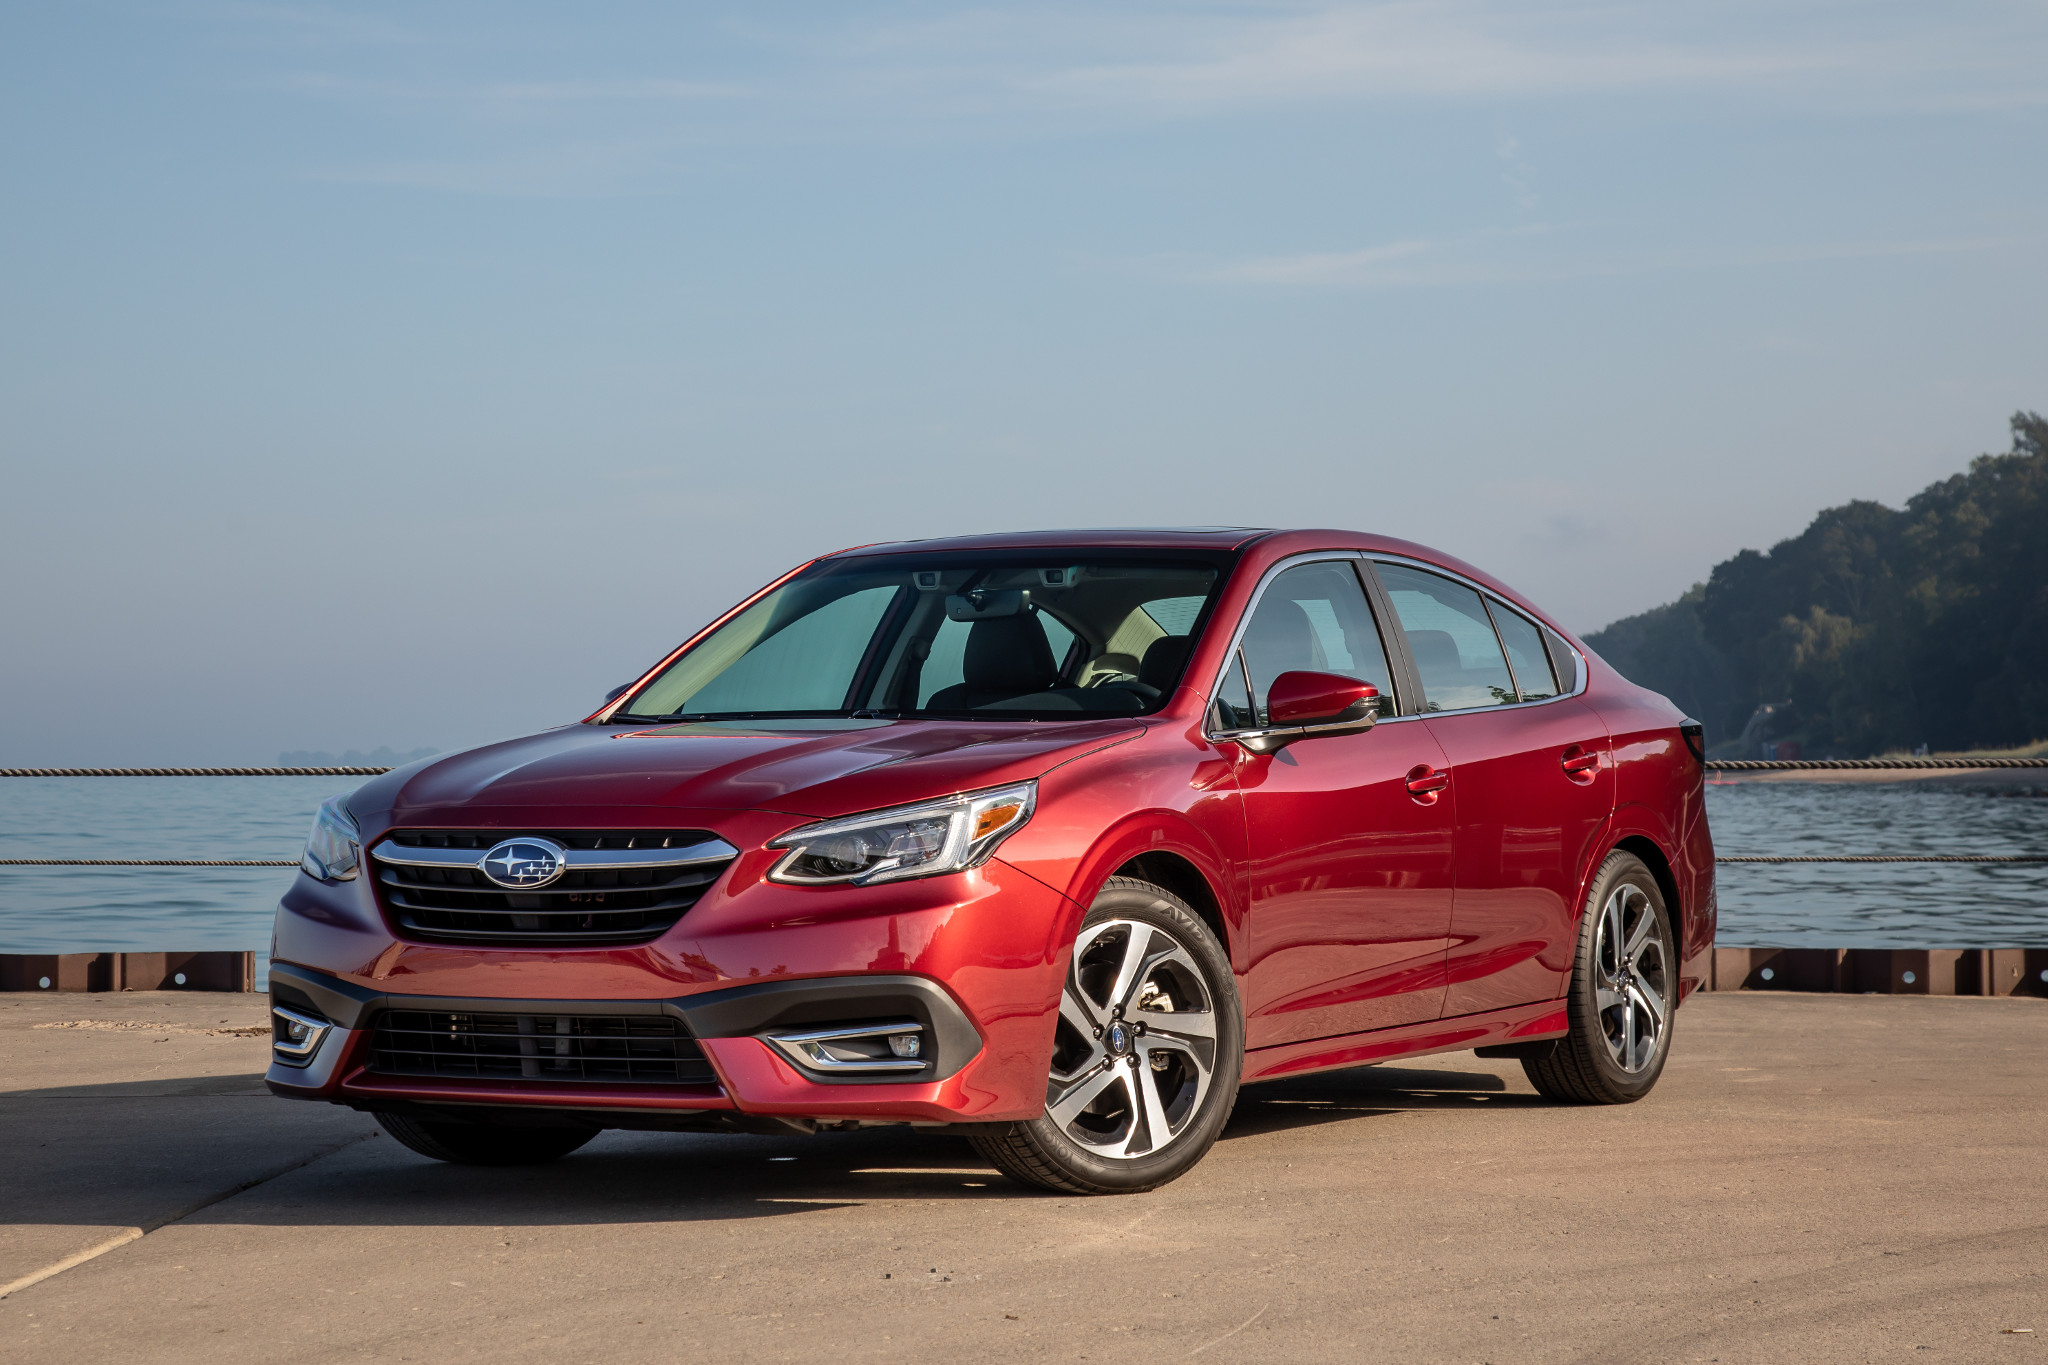 2020 Subaru Legacy Review: Boring in the Best Ways